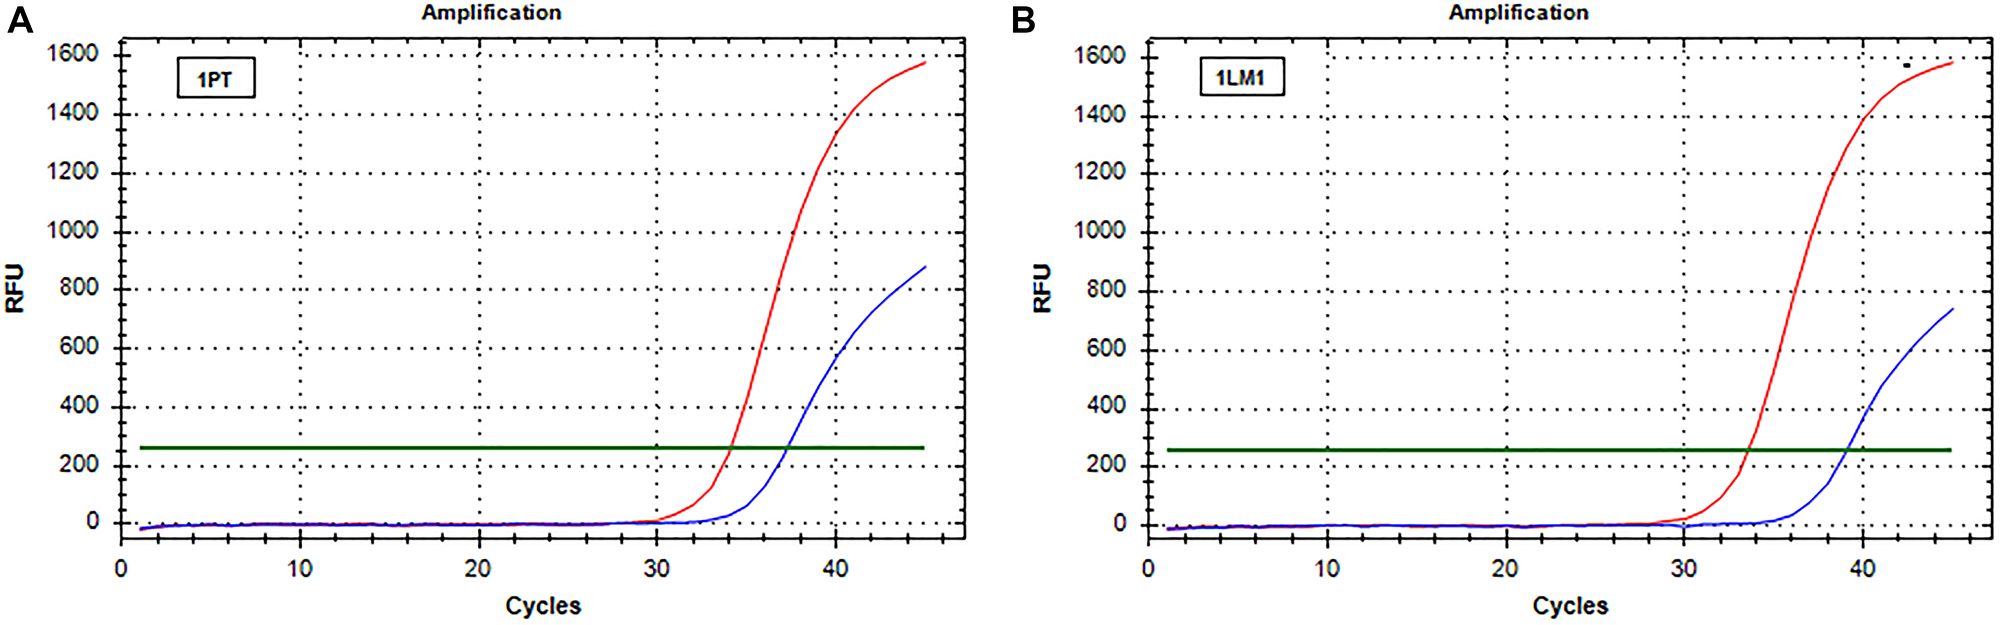 Real-time PCR (SensiScreen™) amplification curves of patient 1 (group 1).